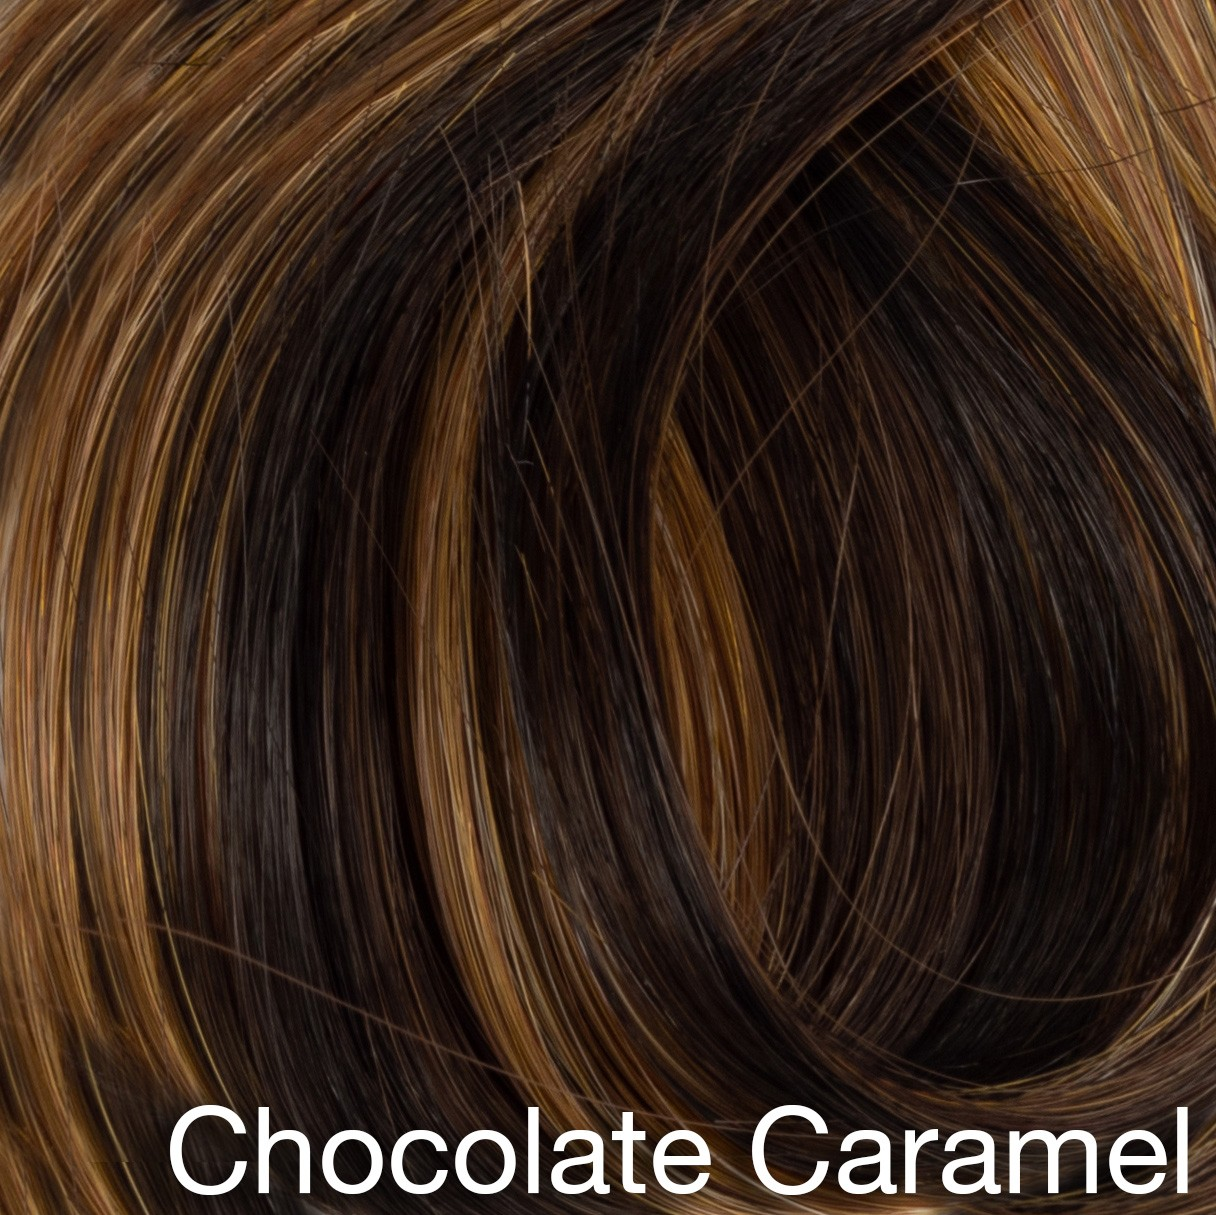 Chocolate Caramel